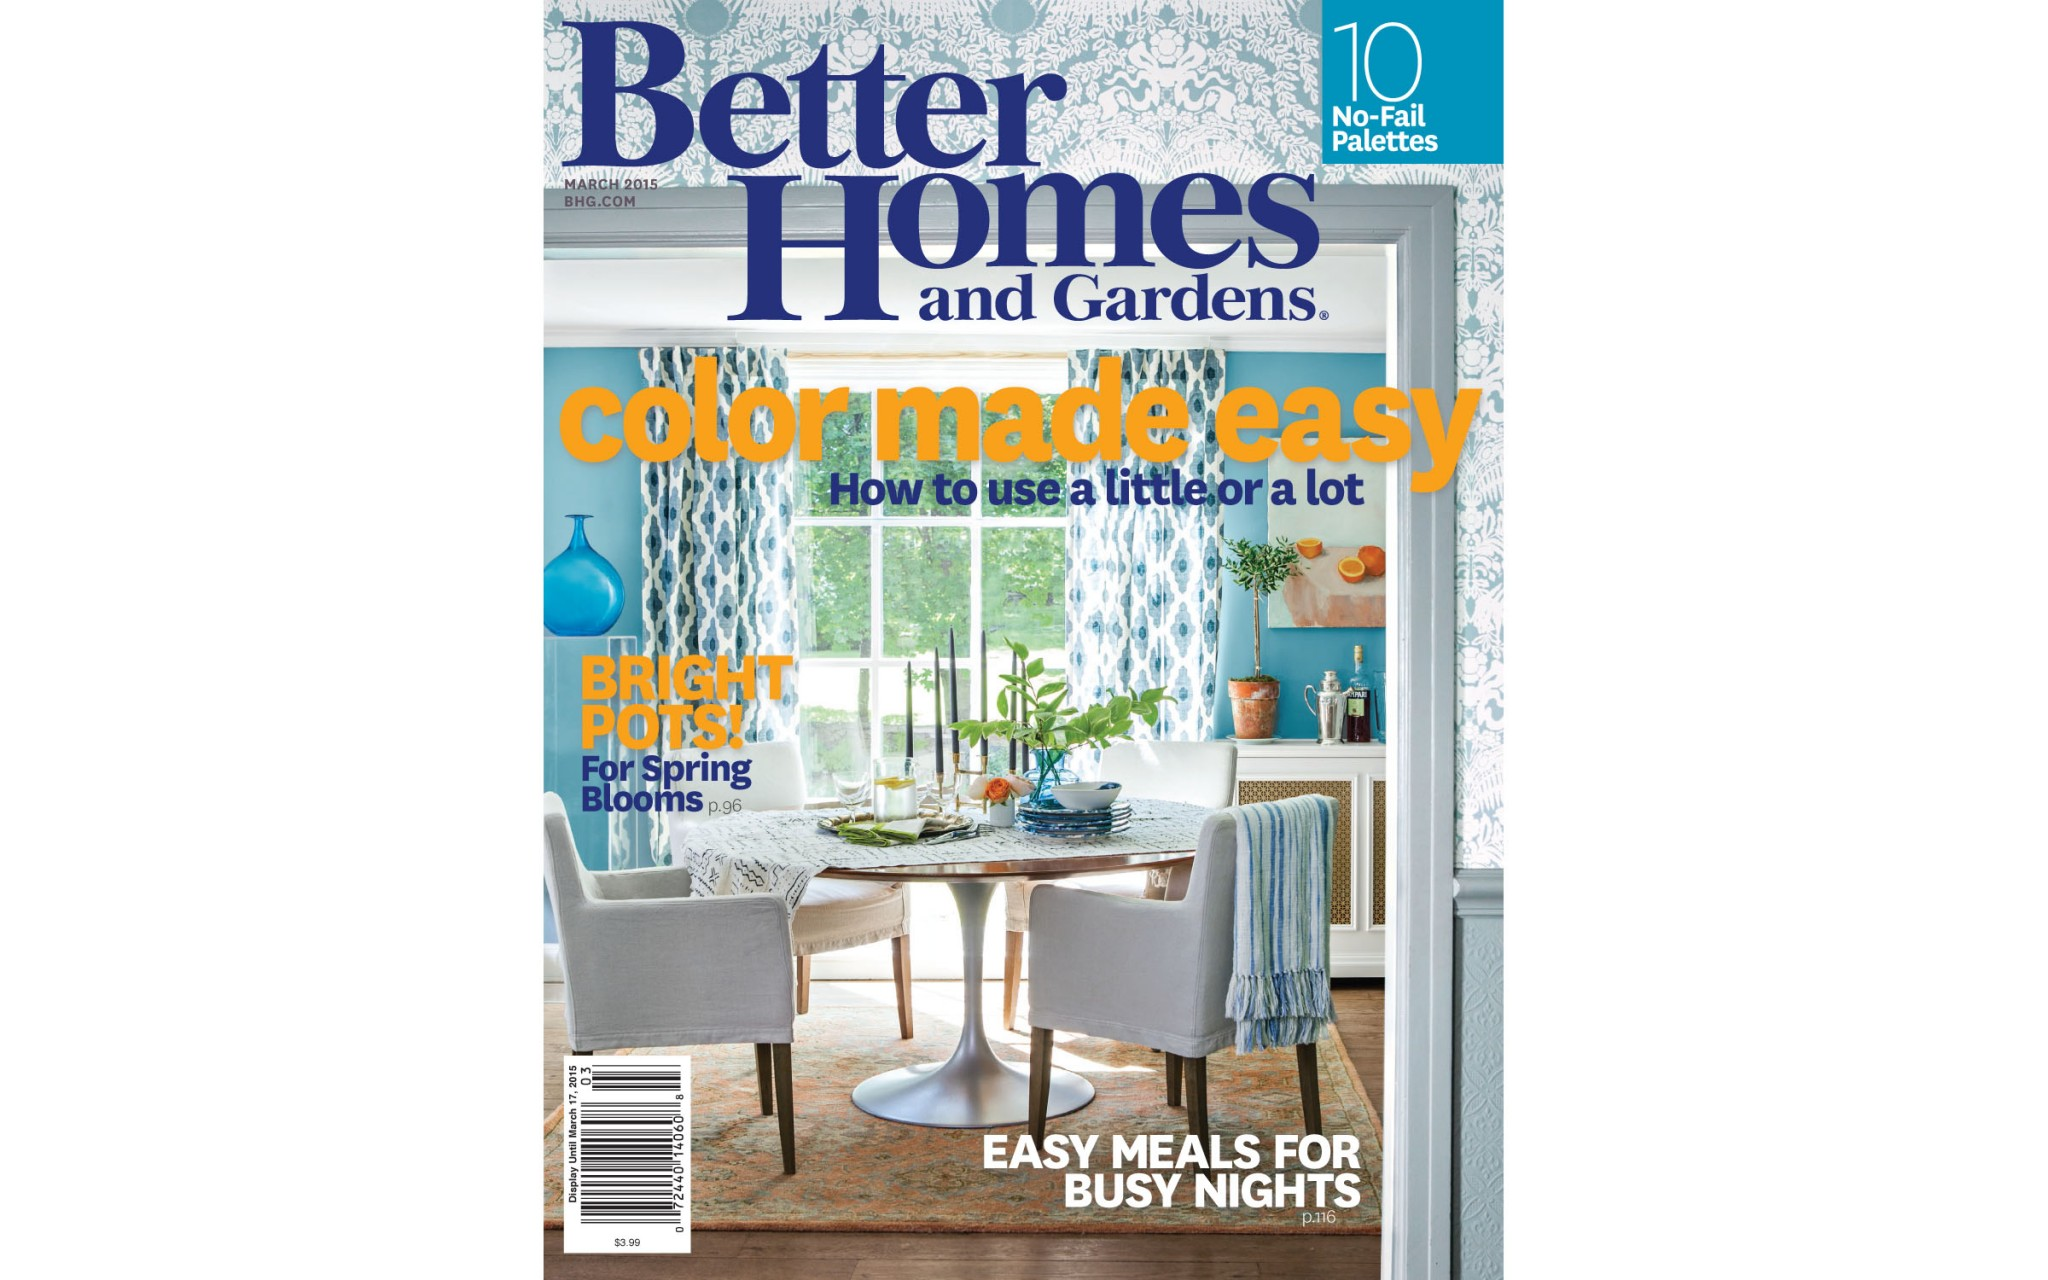 Better homes and gardens elizabeth swartz interiors Better homes gardens tv show recipes